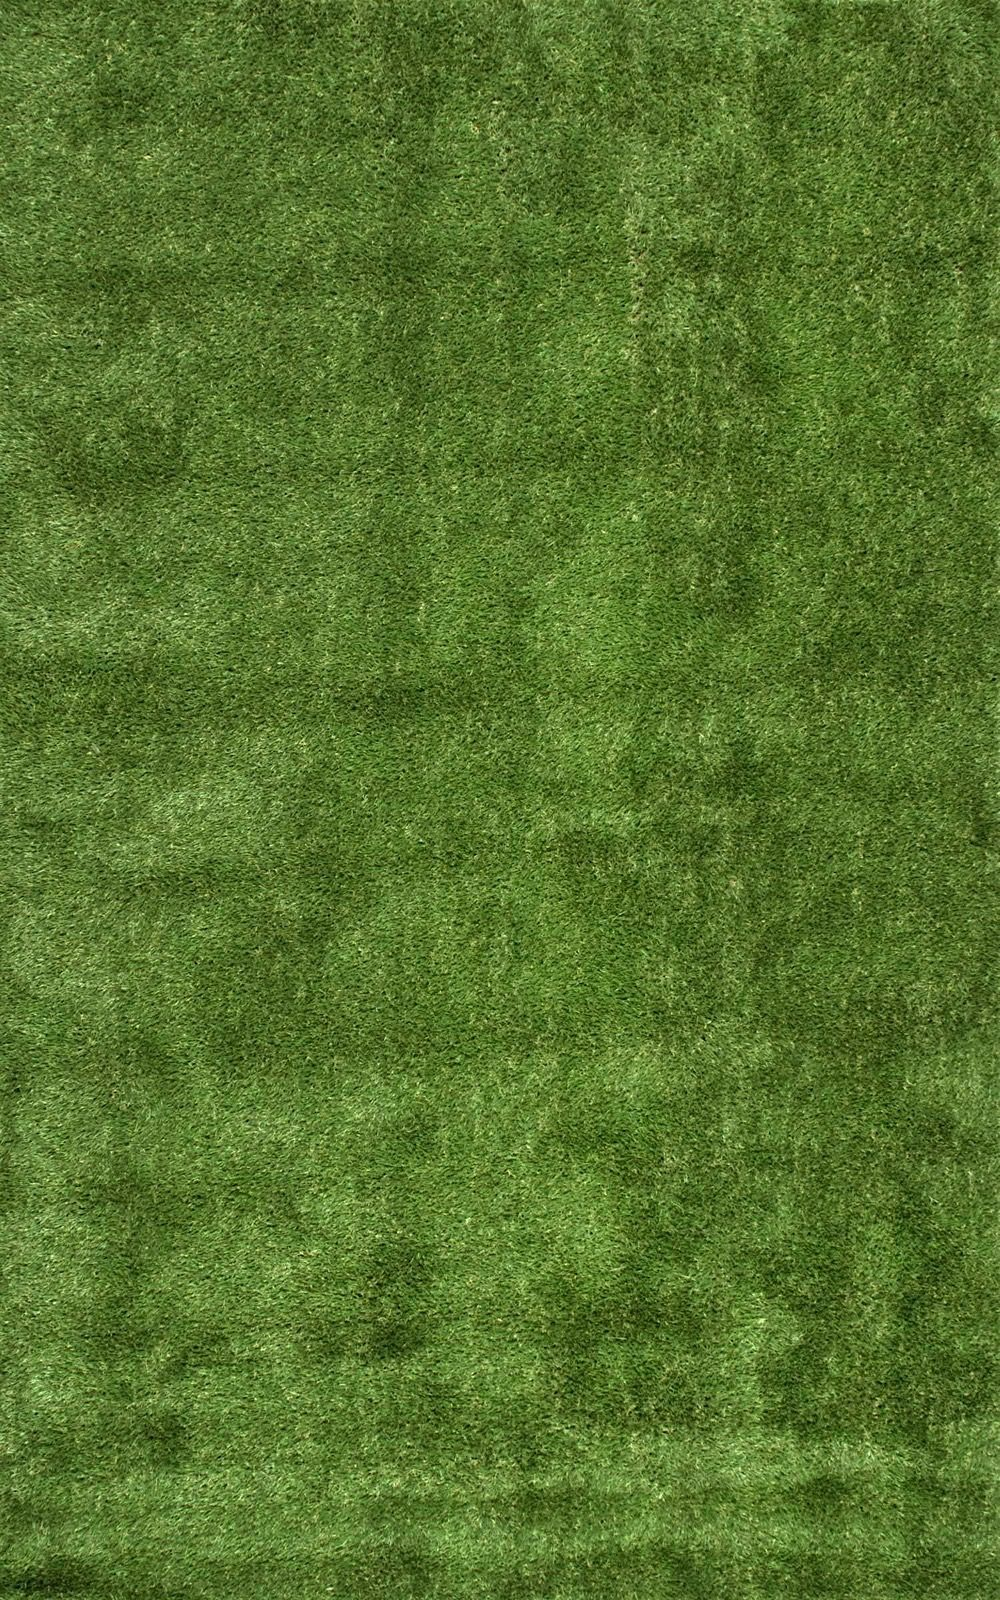 nuloom artificial grass indoor/outdoor area rug collection